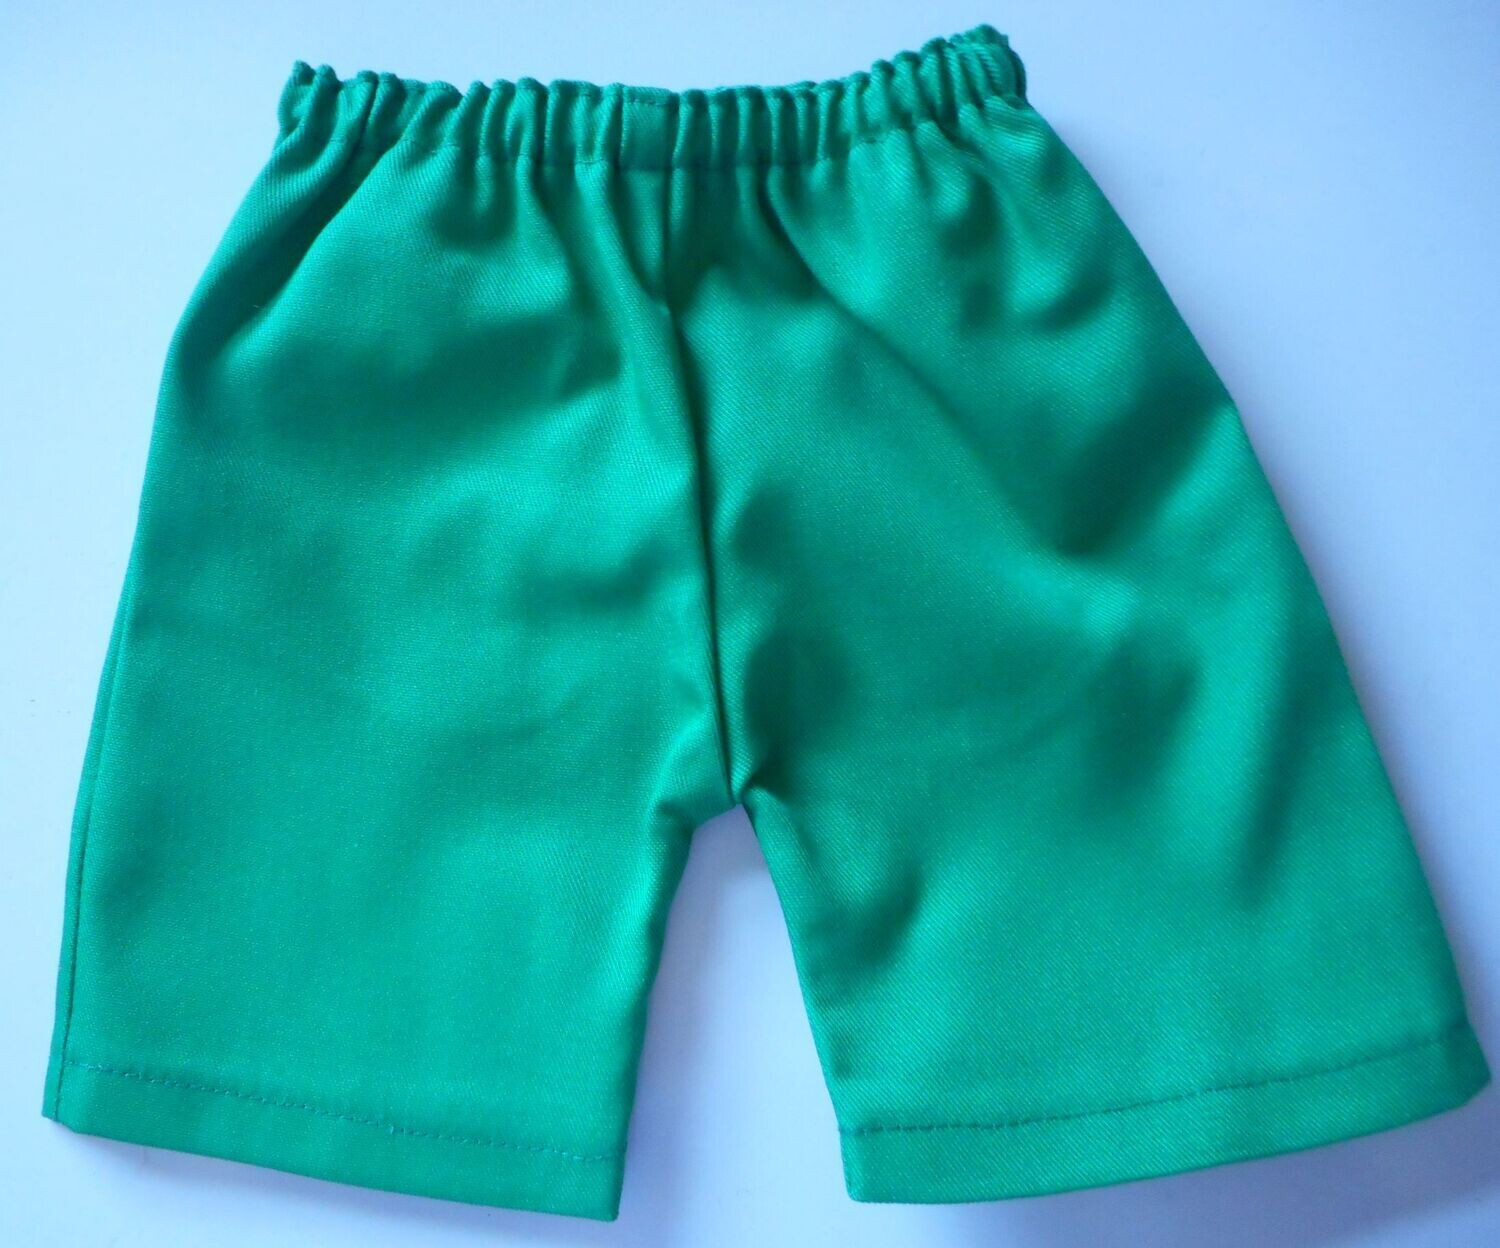 Trousers with side pockets - Bright green cotton drill